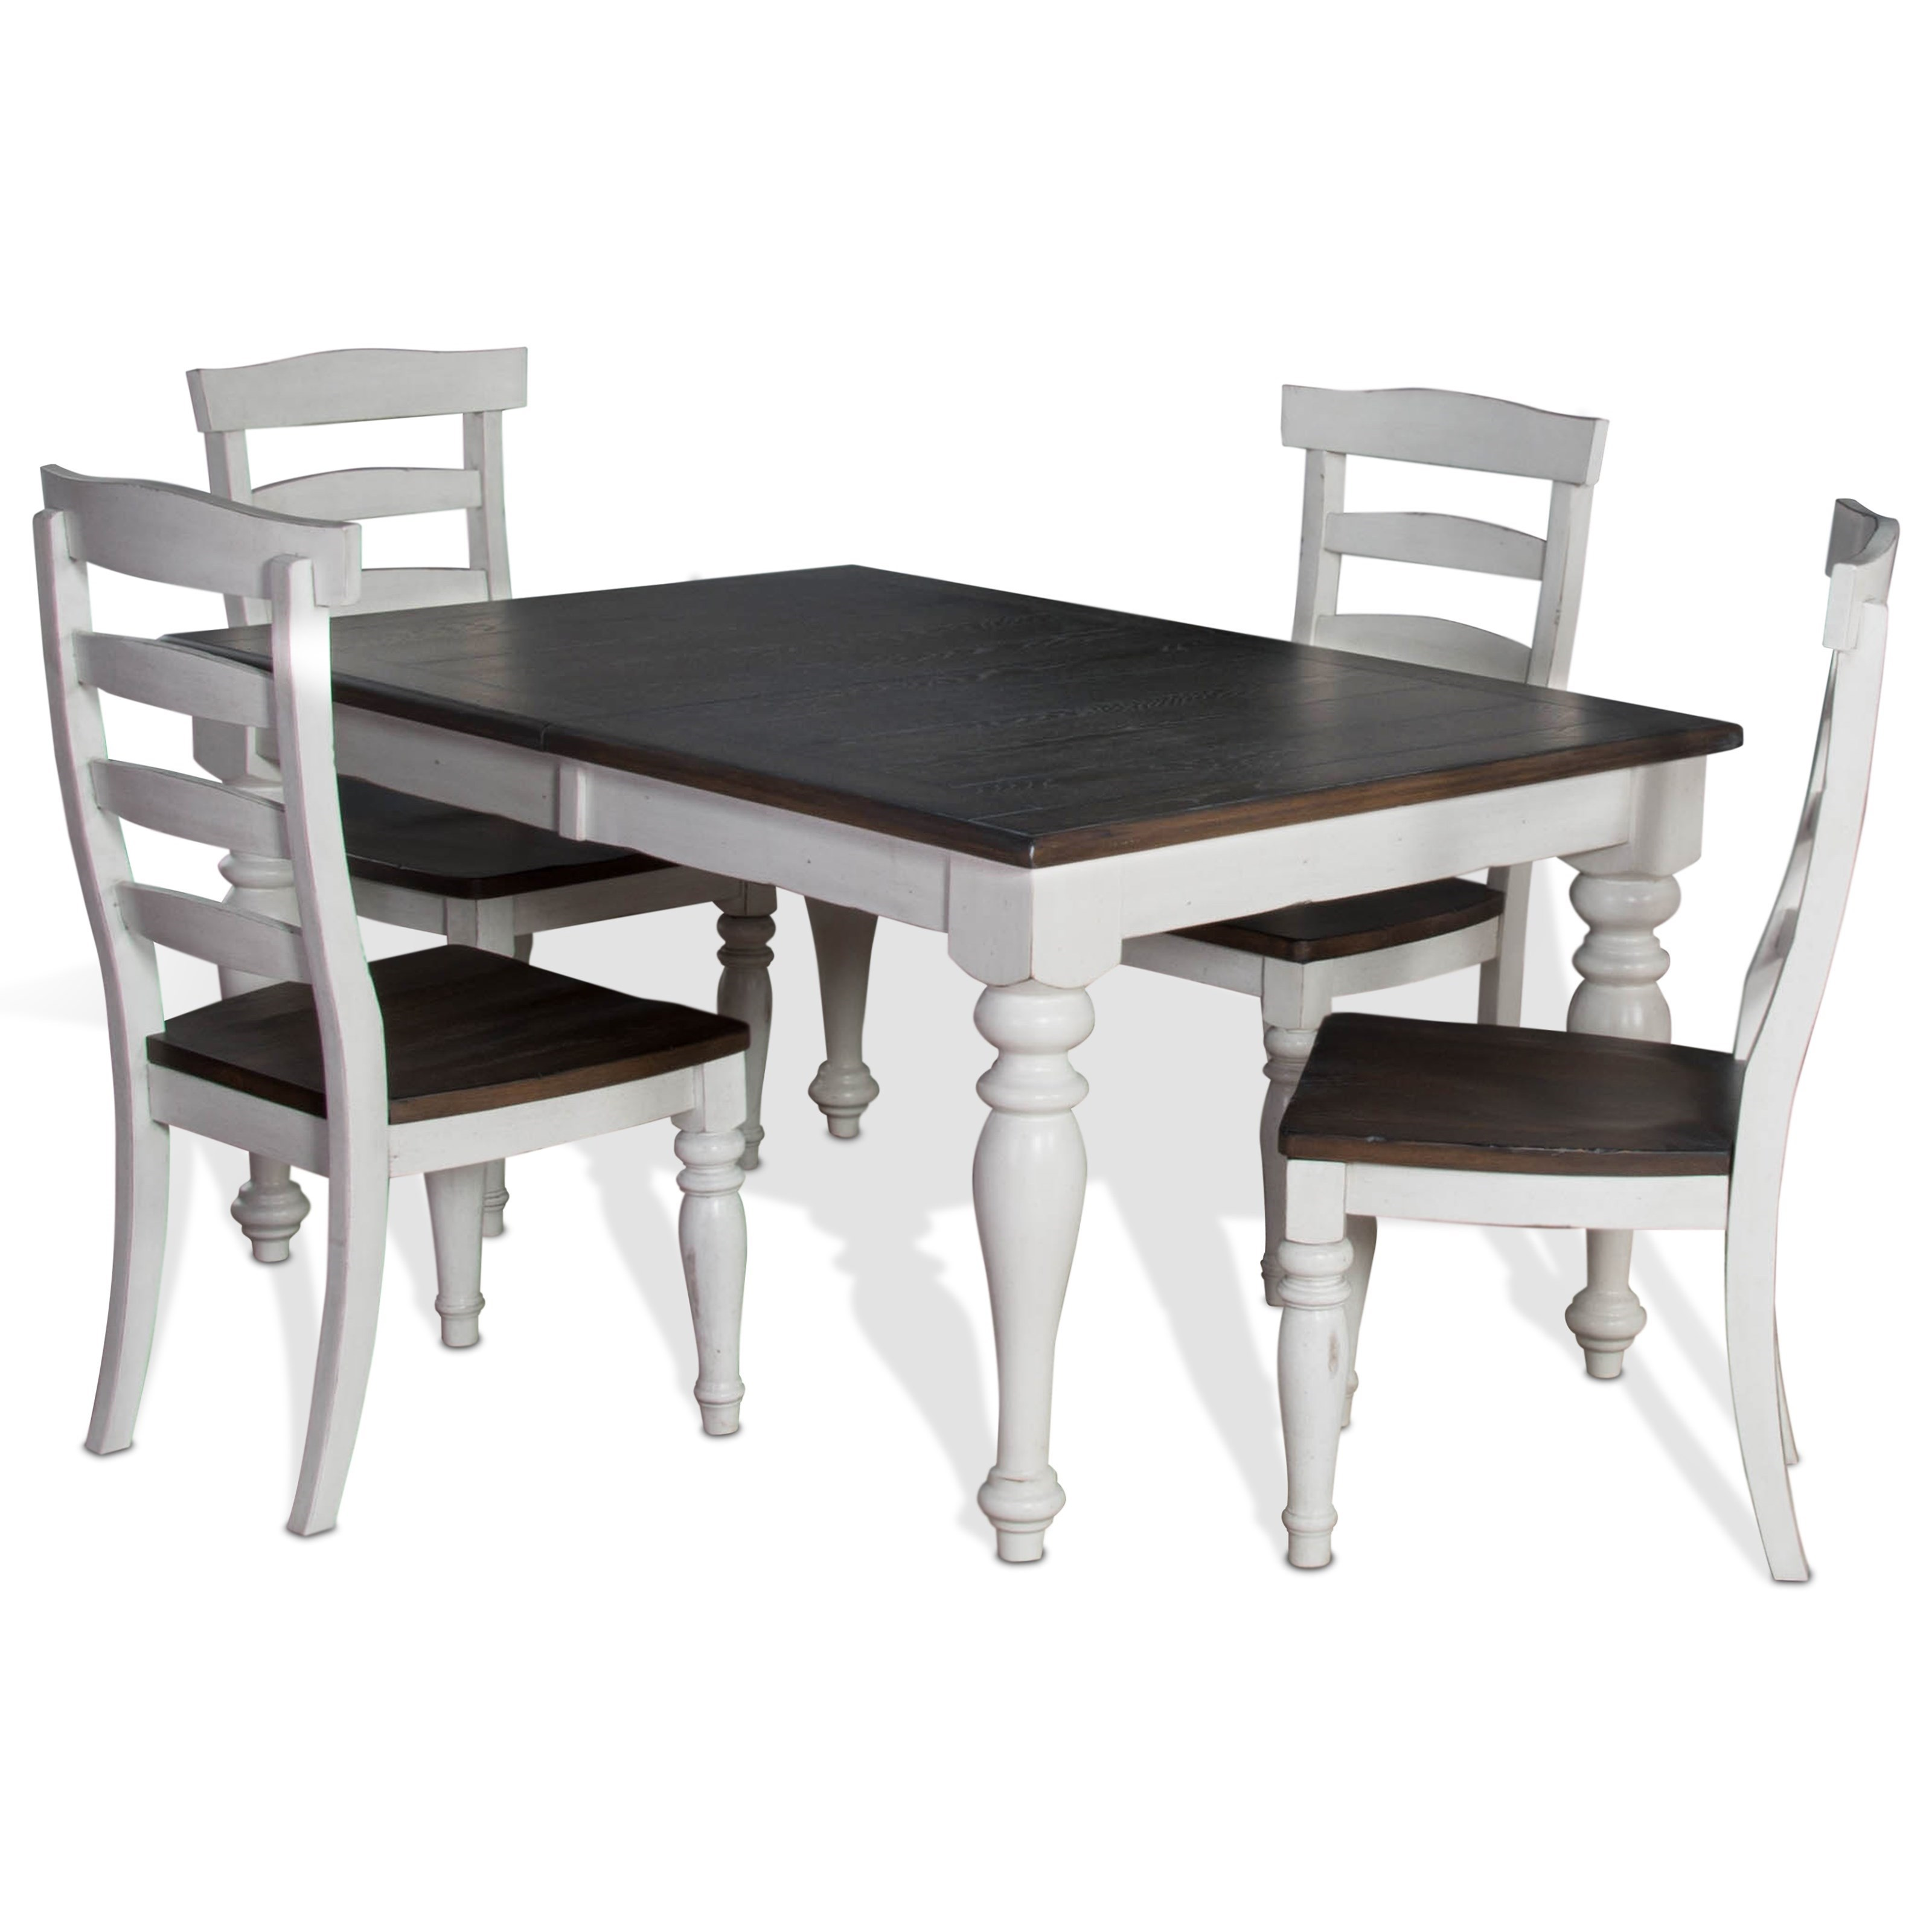 chair design set poul jensen armchair 5 piece extension dining table with ladderback chairs